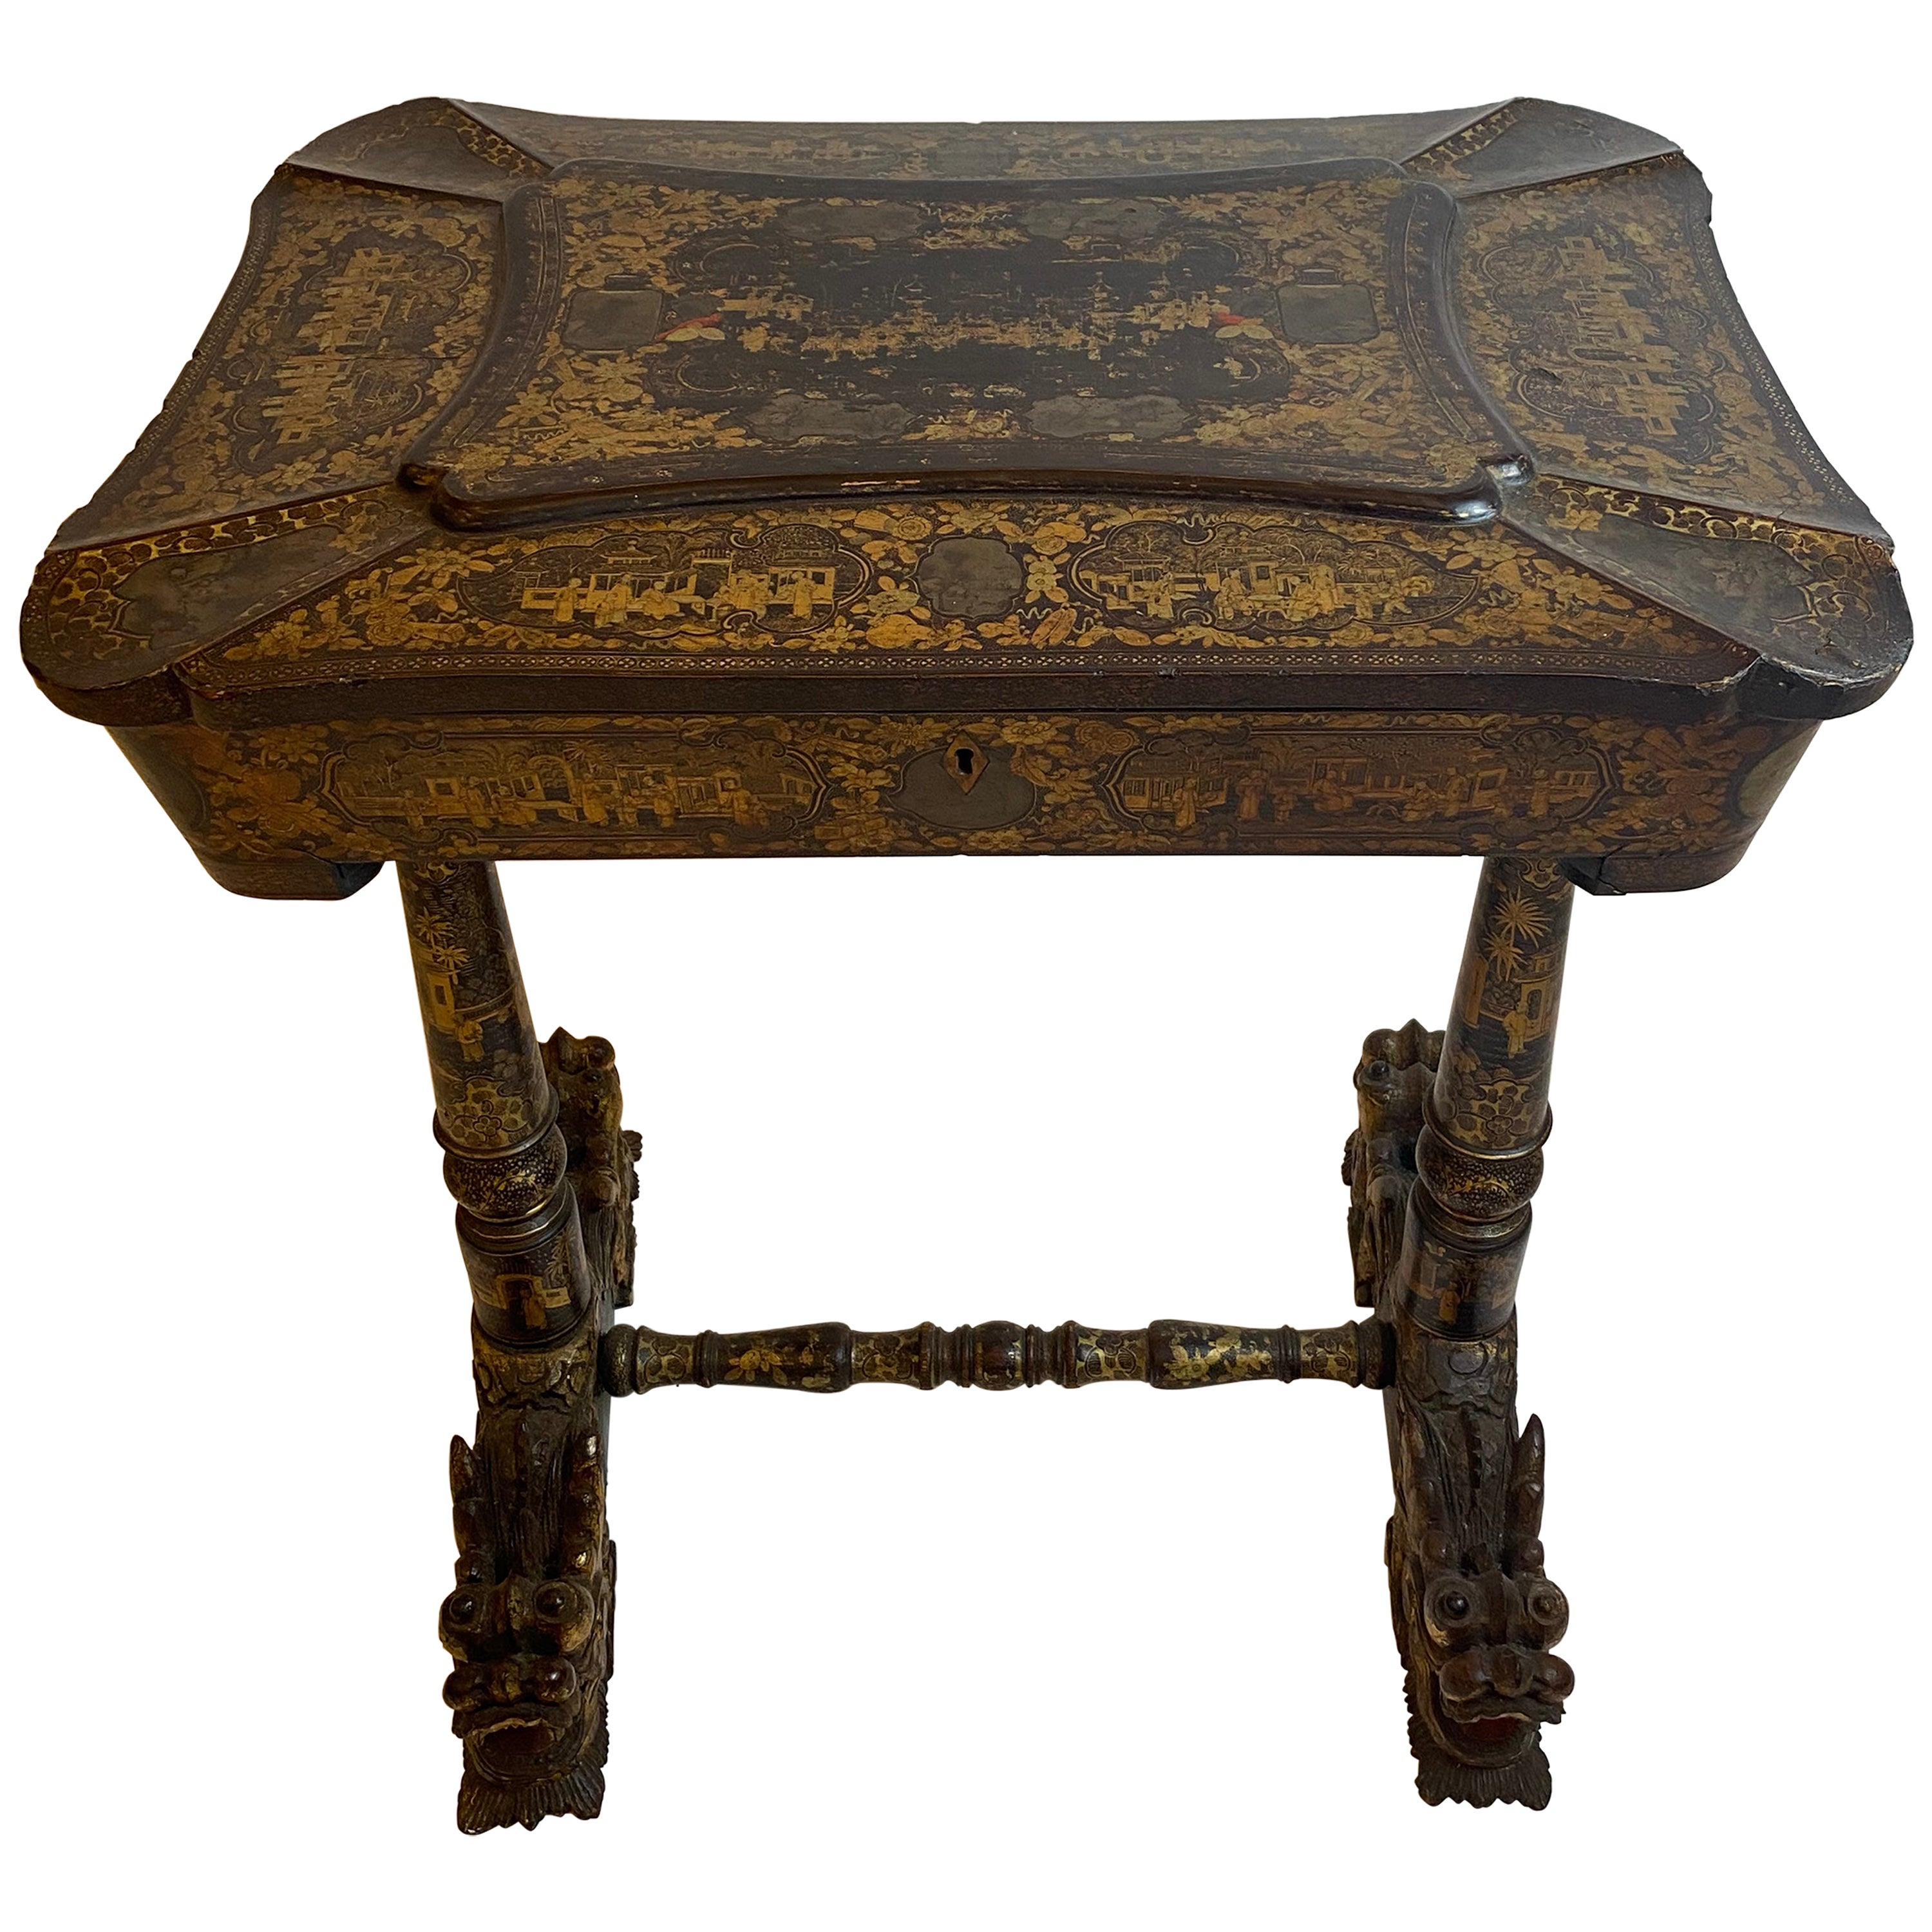 Early 19th Century Chinese Export Lacquer and Gilt Work Table